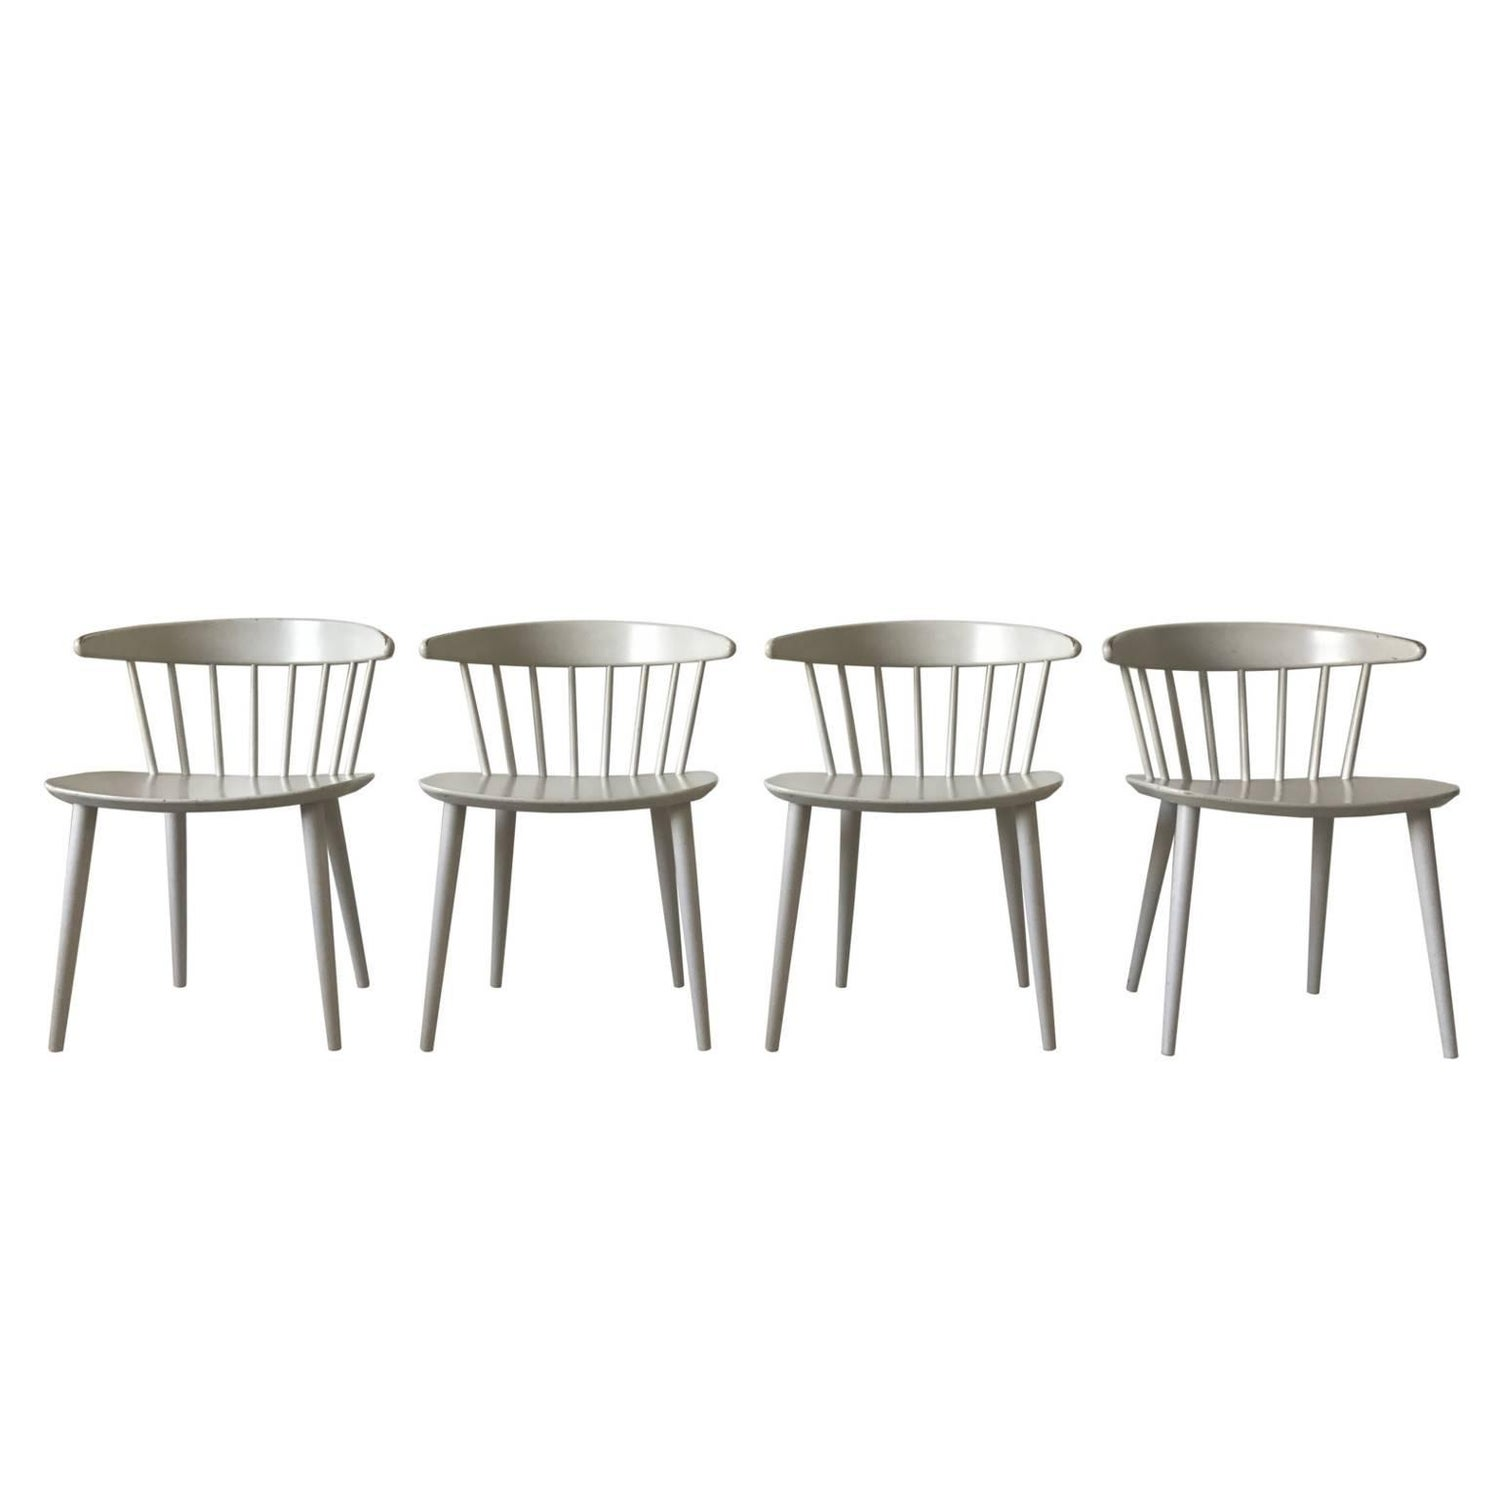 Stunning White J104 Dining Chairs by J¸rgen B¦kmark for FDB M¸bler